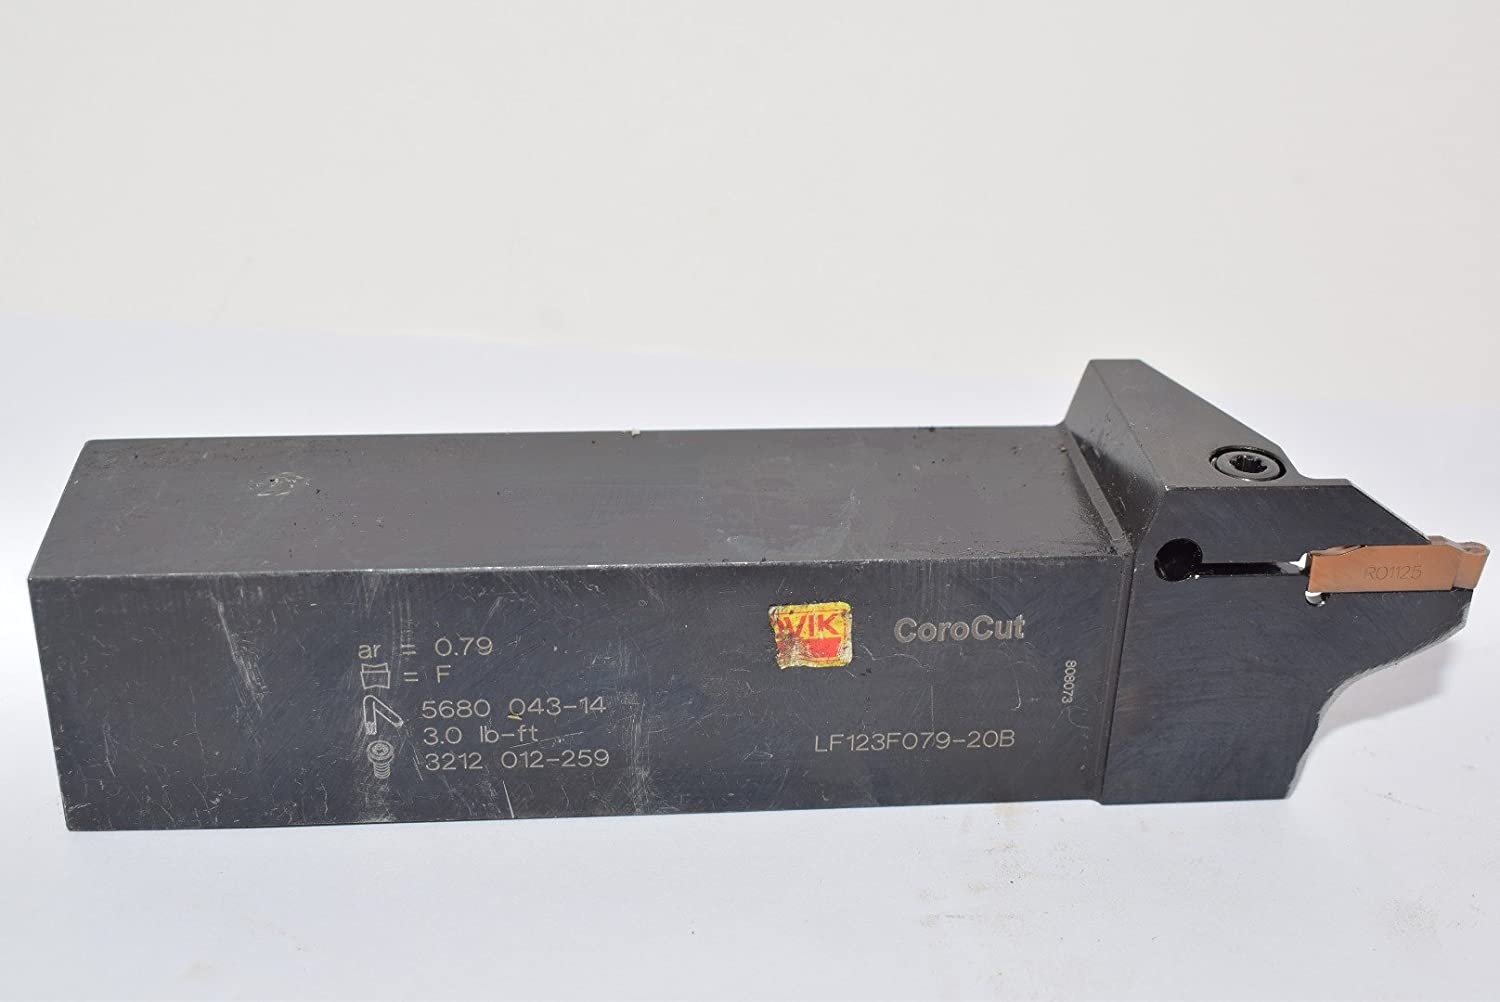 90 Degree Entering Angle Sandvik Coromant Solid Carbide Indexable Milling Tool 8 Flutes